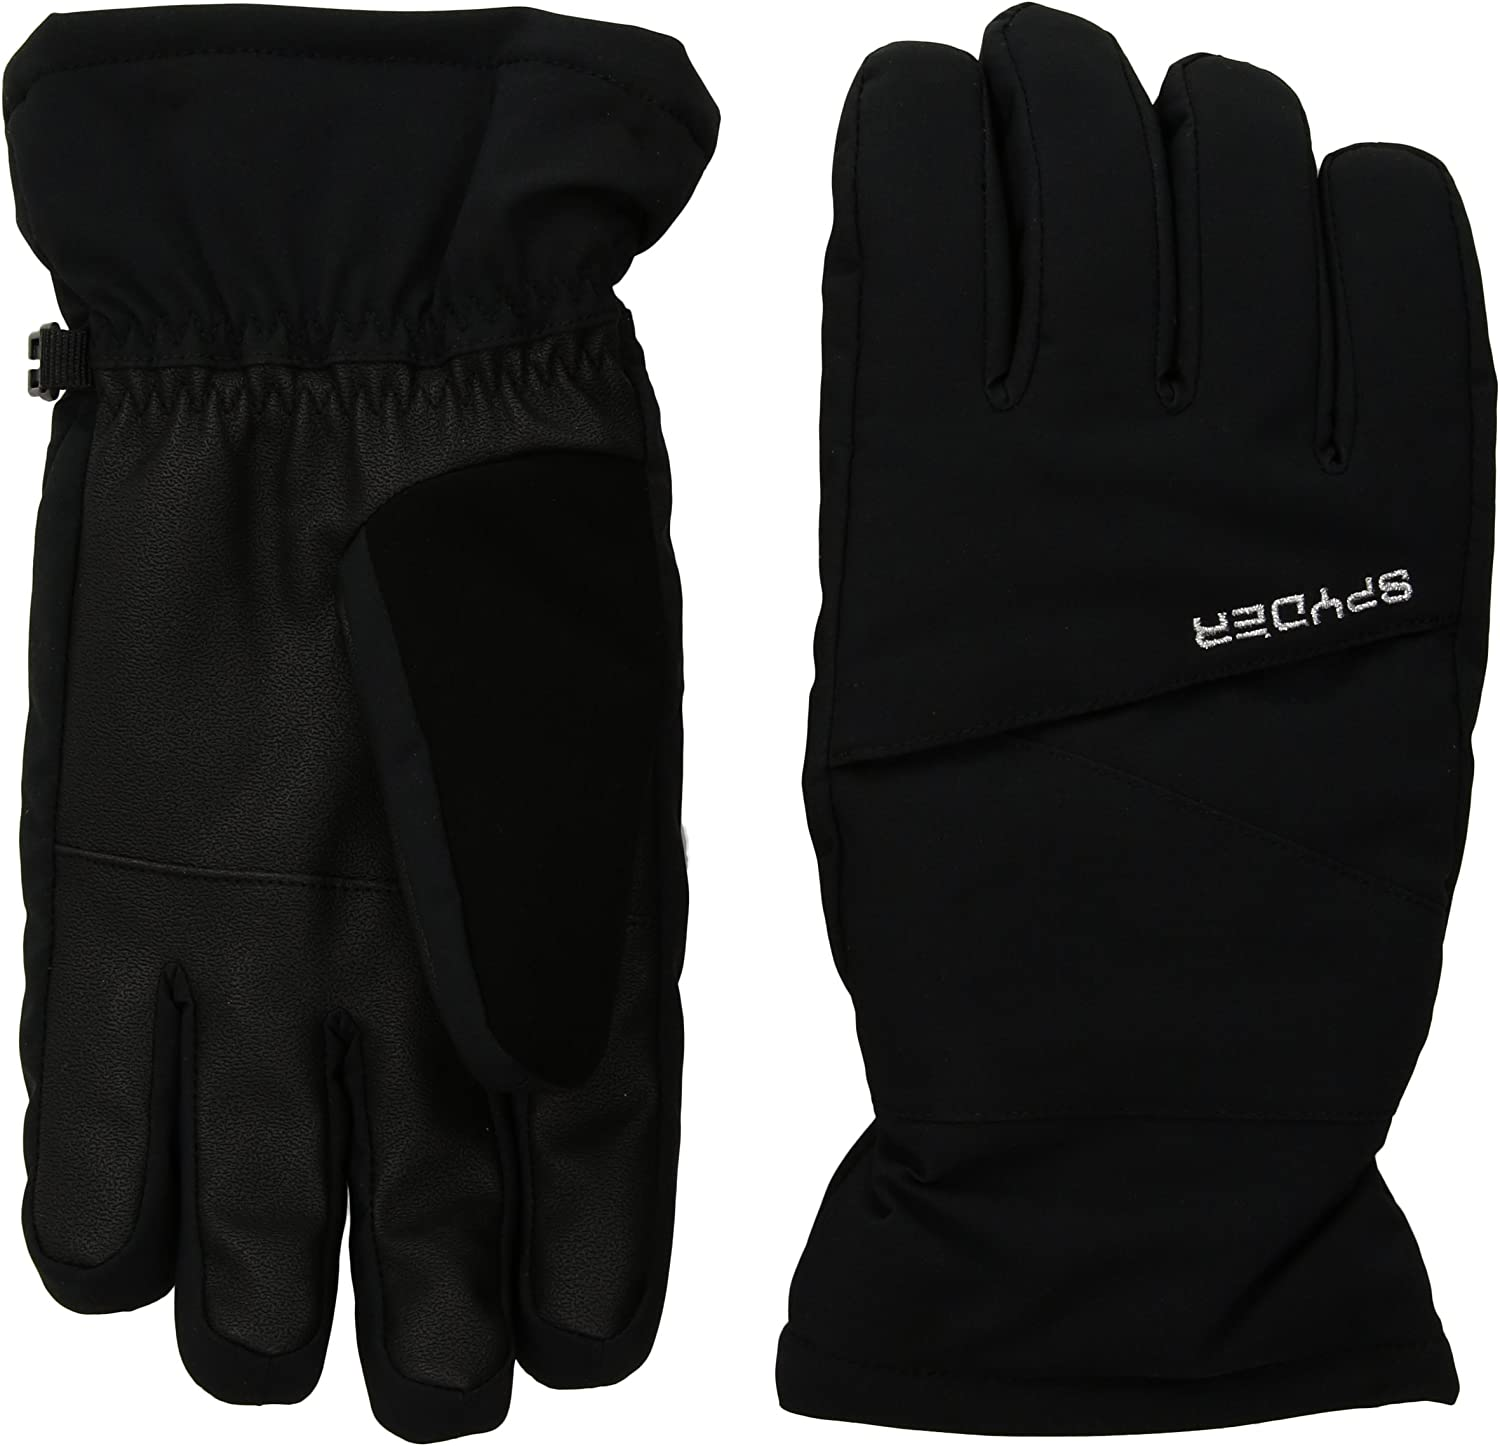 Spyder Girl's Astrid Limited price sale Ski Now free shipping Glove